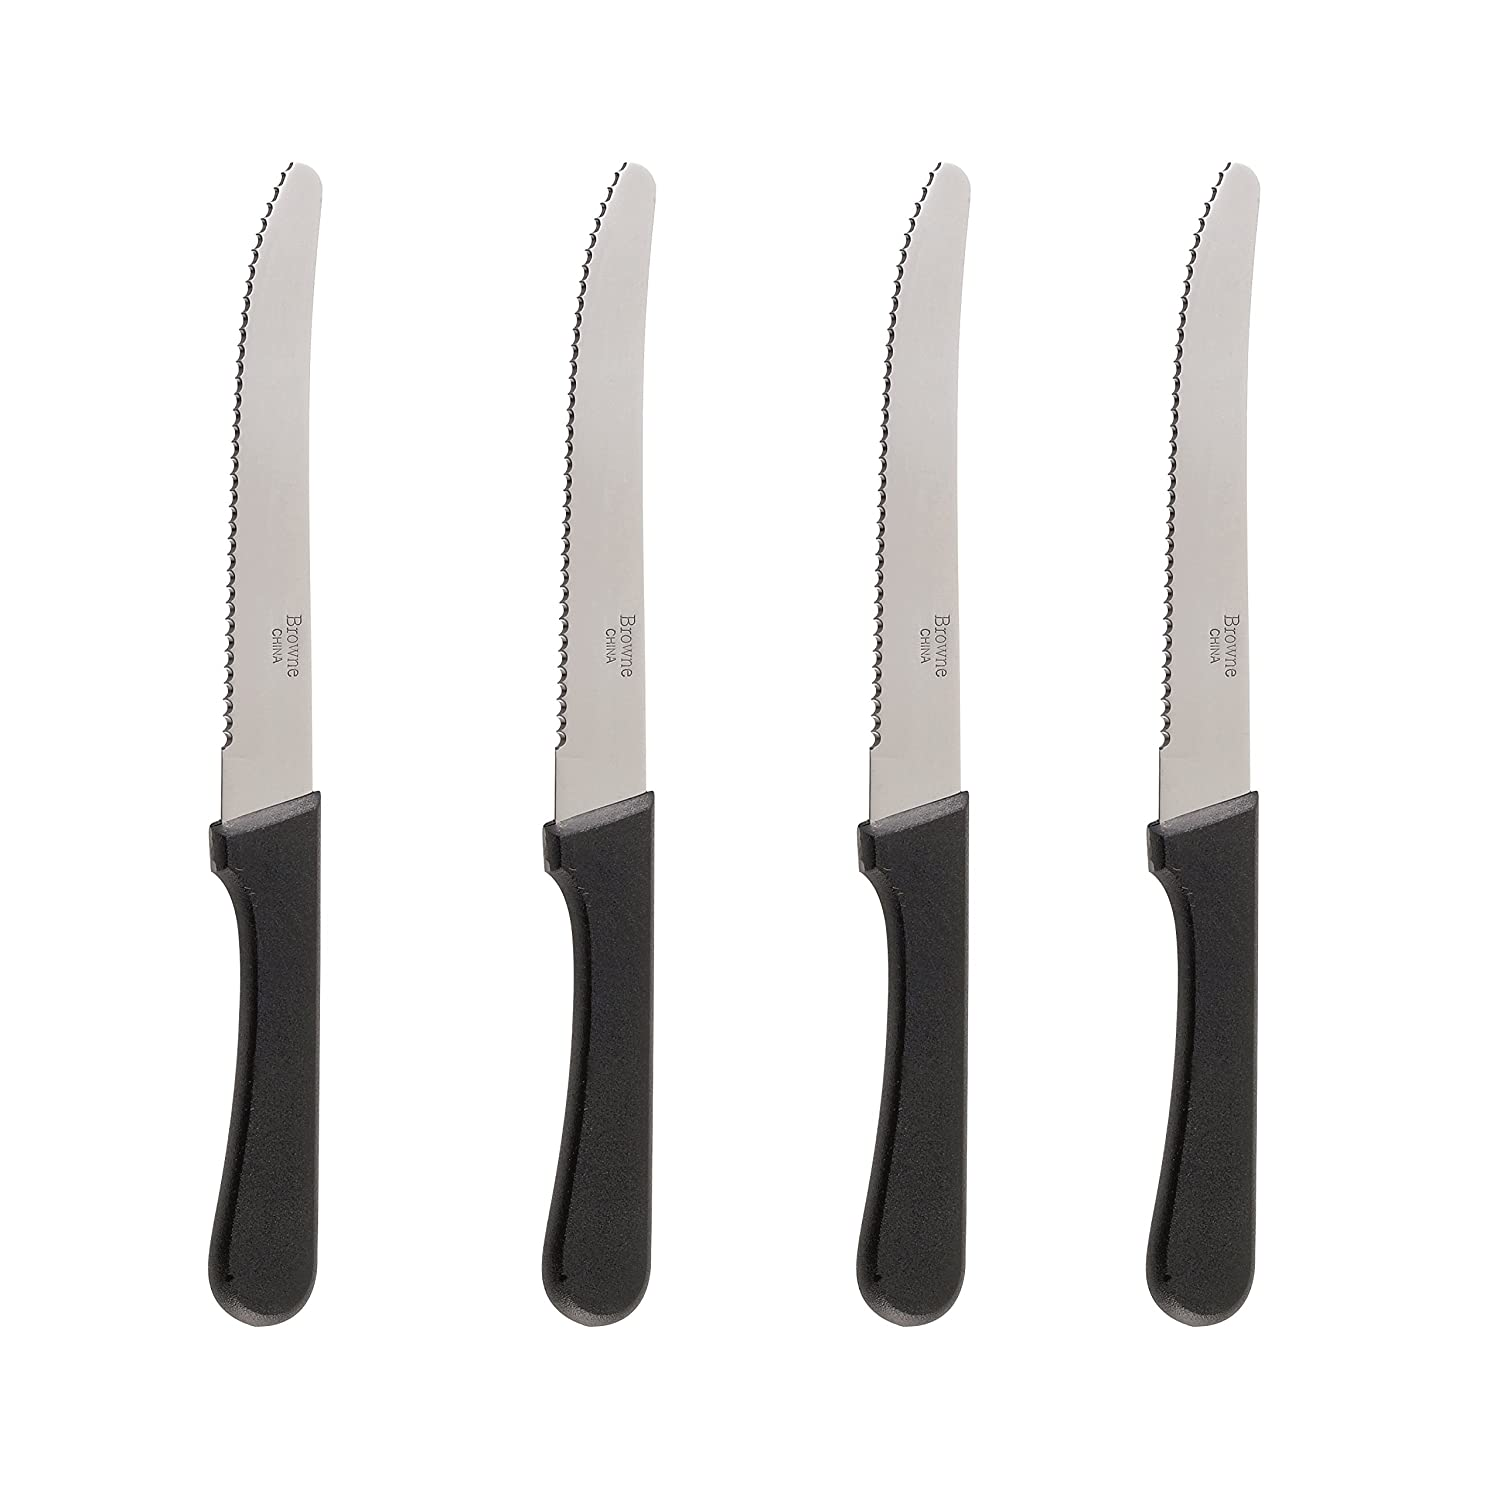 Steak Knives Serrated Set, Restaurant Quality, Stainless Steel, 4.25-inch, Rounded Tip, Set of 4 (4)